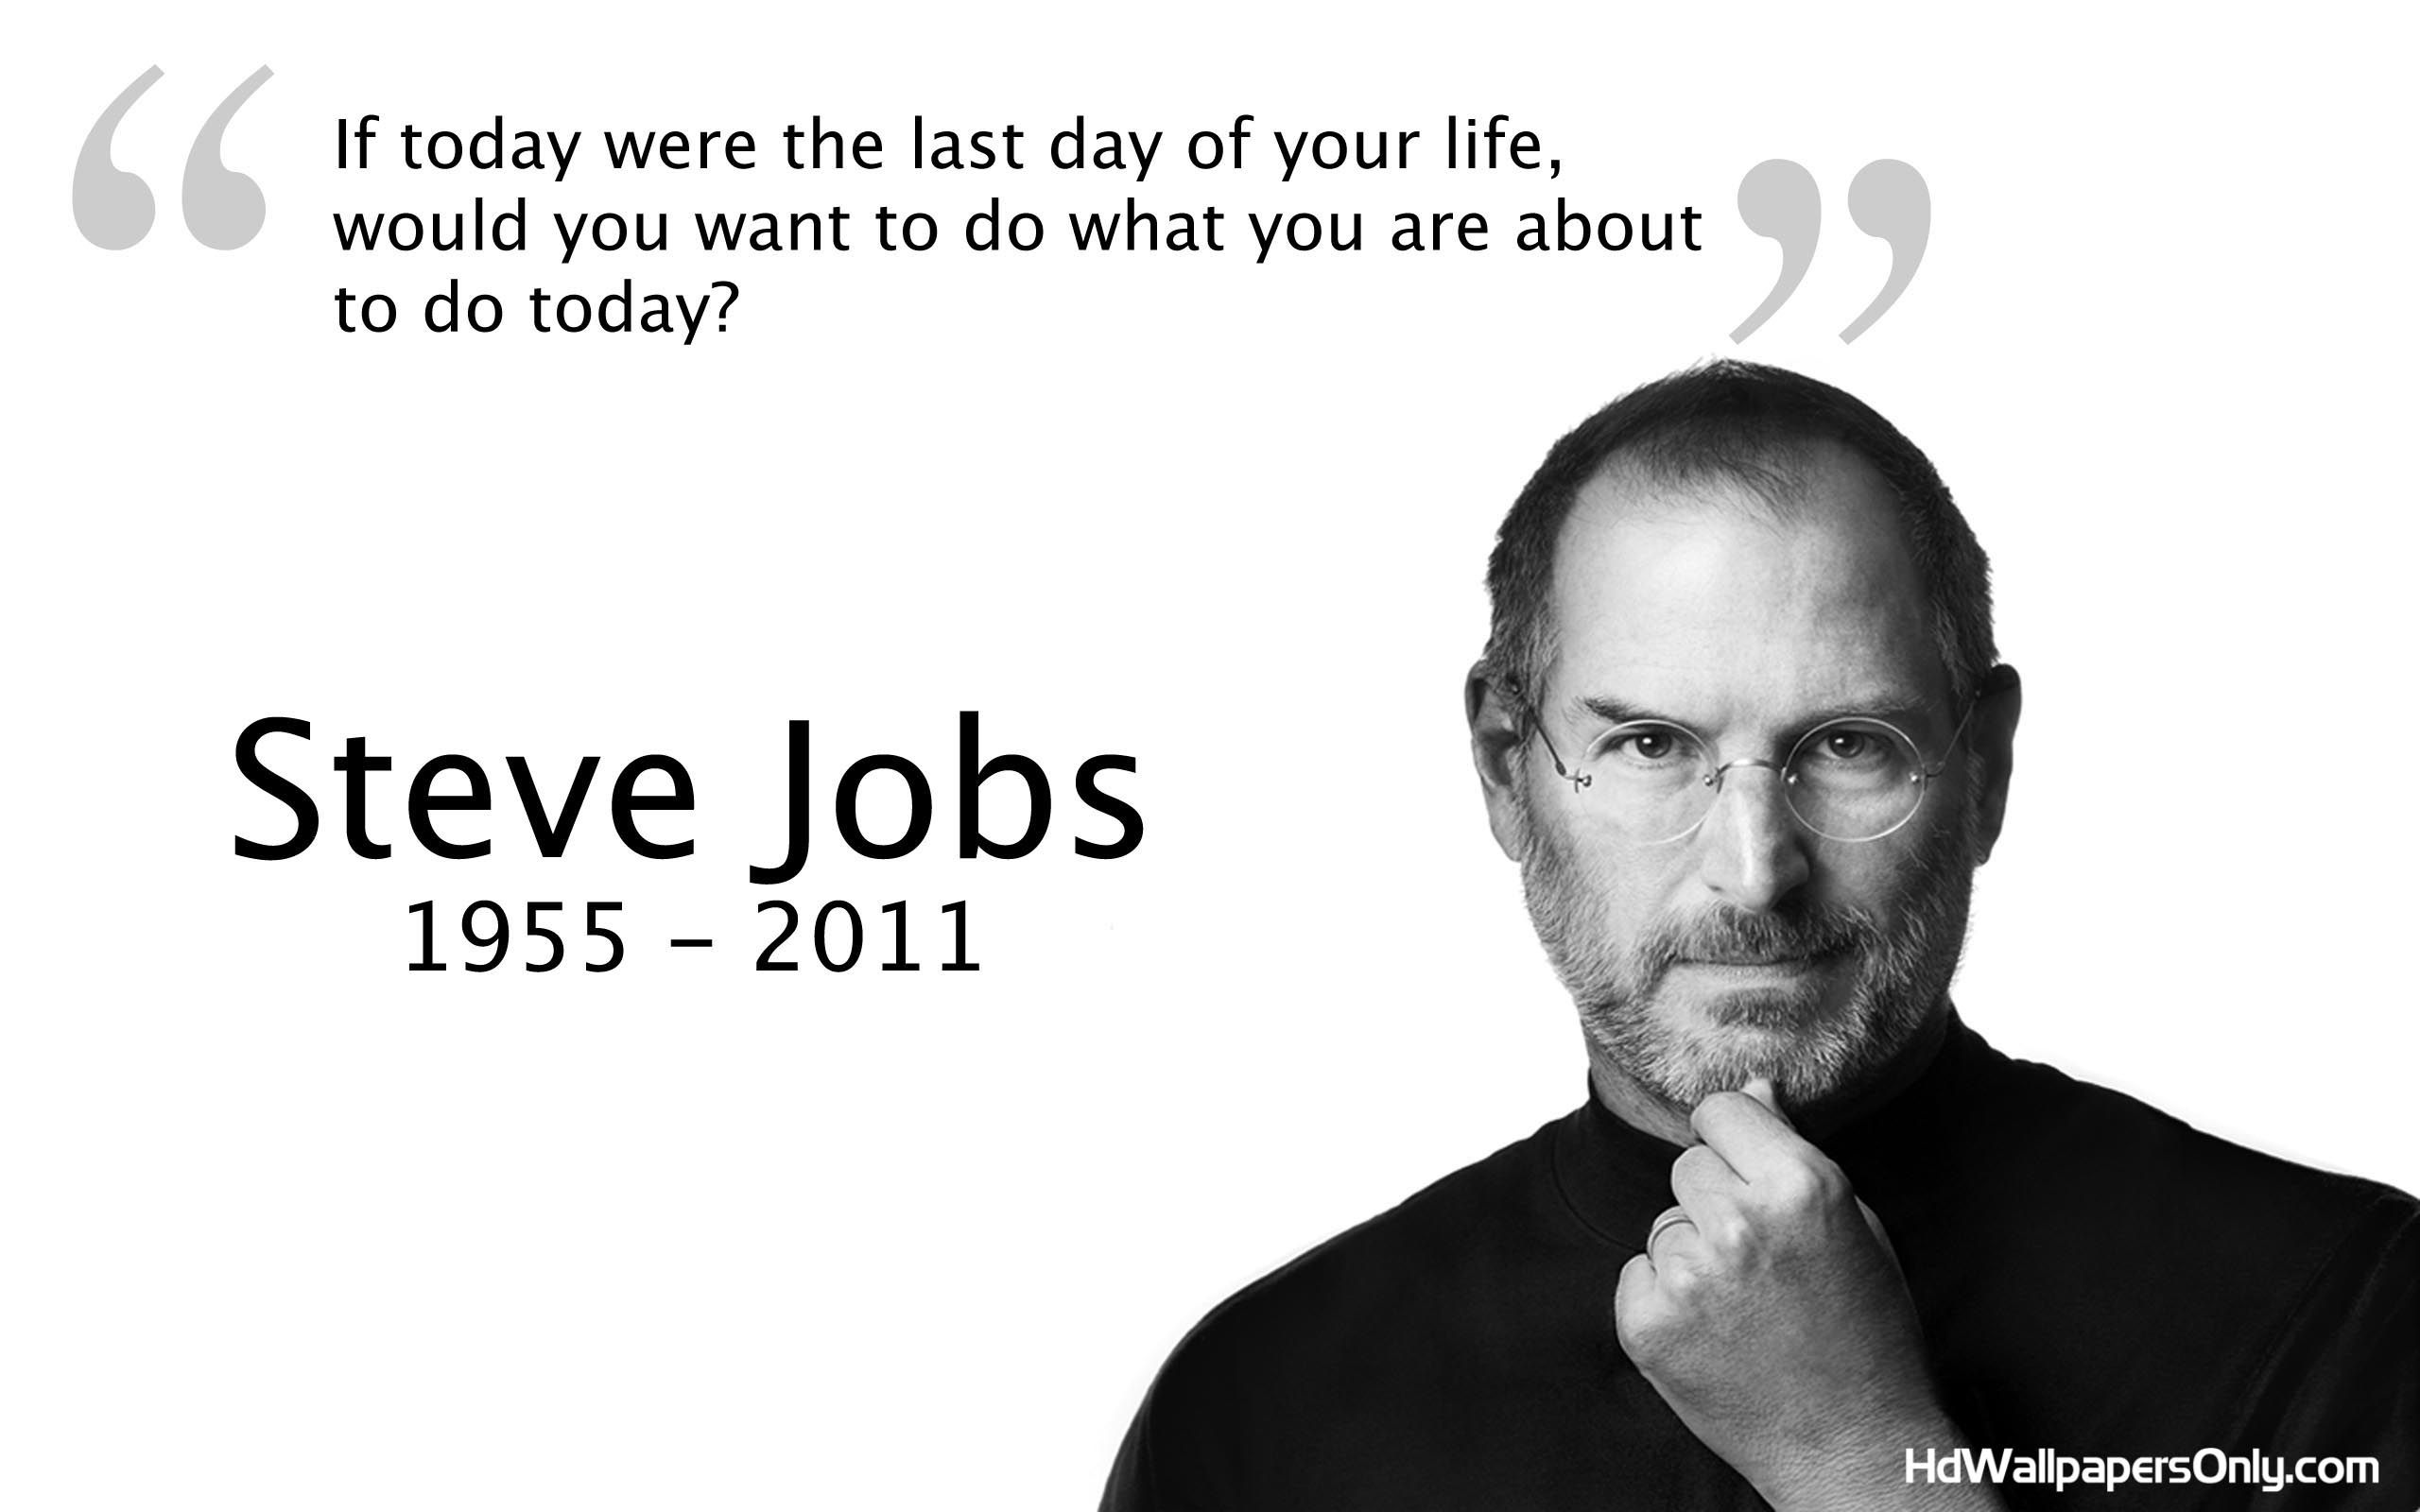 steve jobs q&a session 1000+ images about Steve Jobs Quotes on Pinterest  Steve job quotes, Steve jobs and Change the worlds